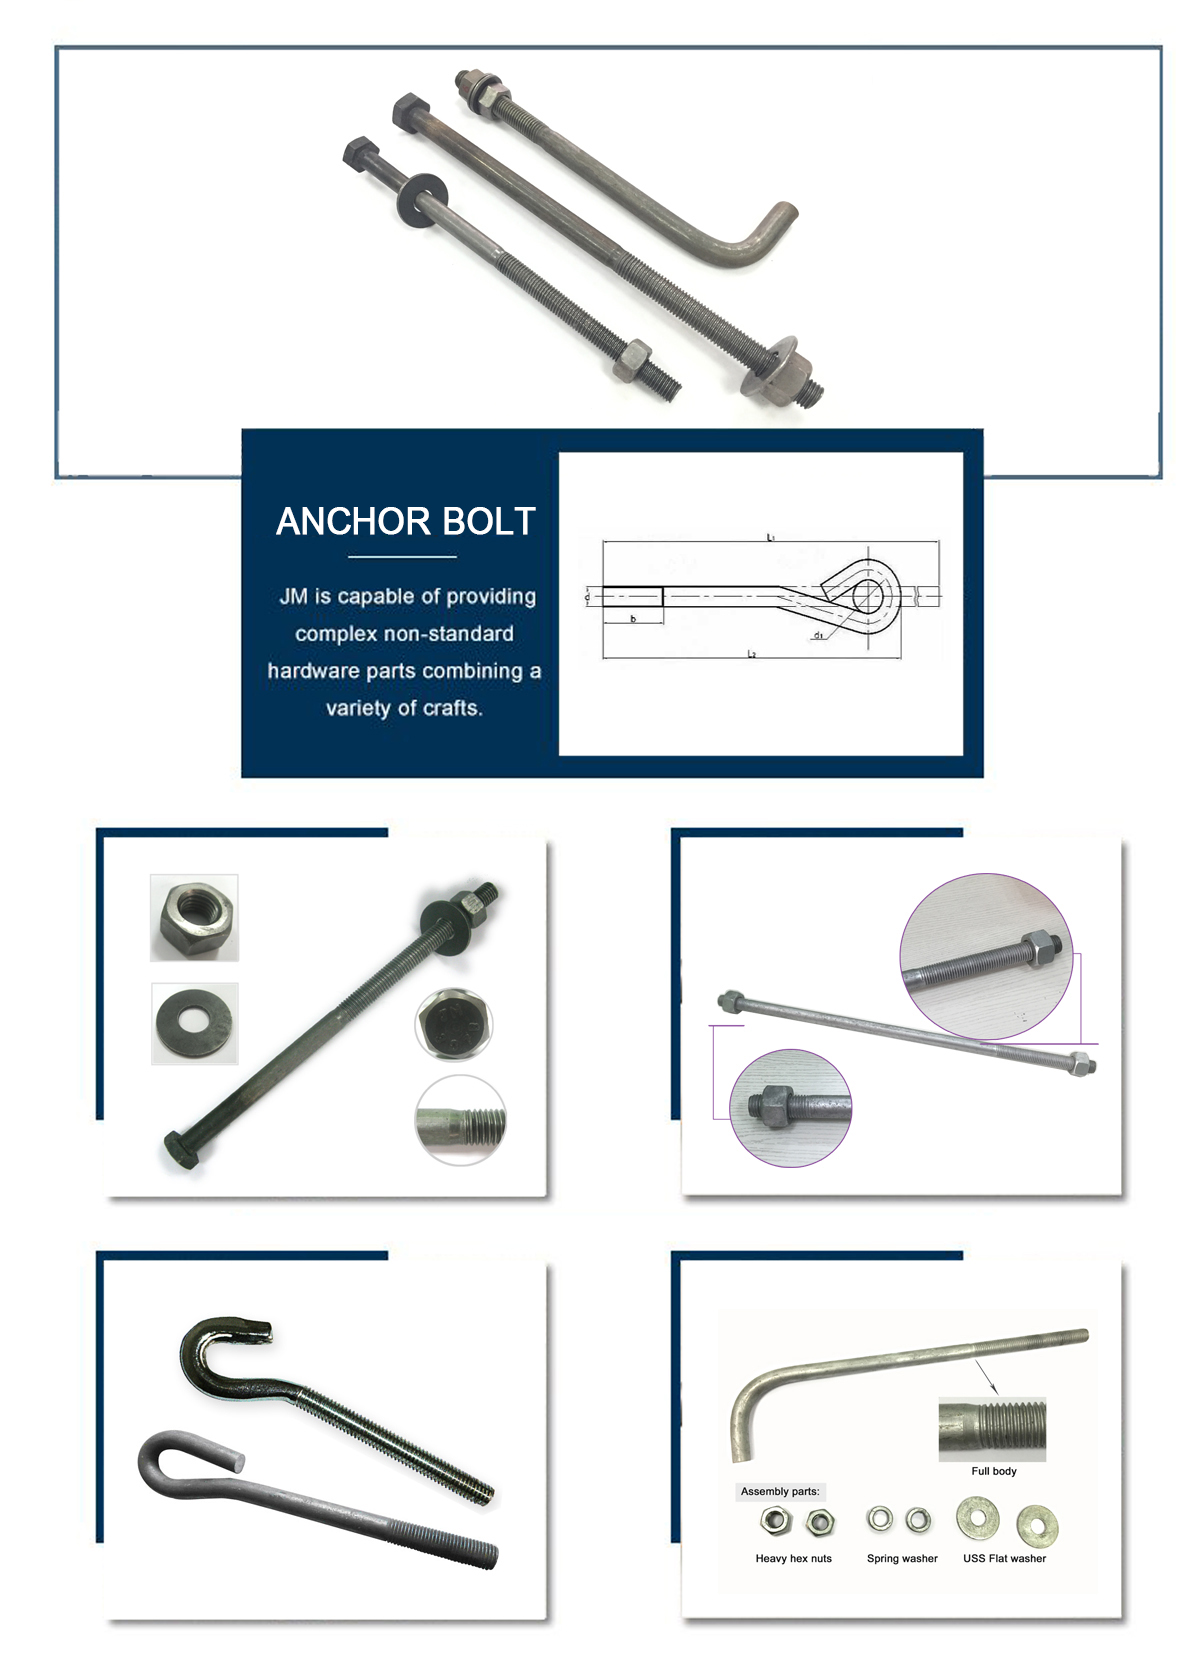 ASTM A307B headed anchor bolt, A449, F1554 anchor bolt